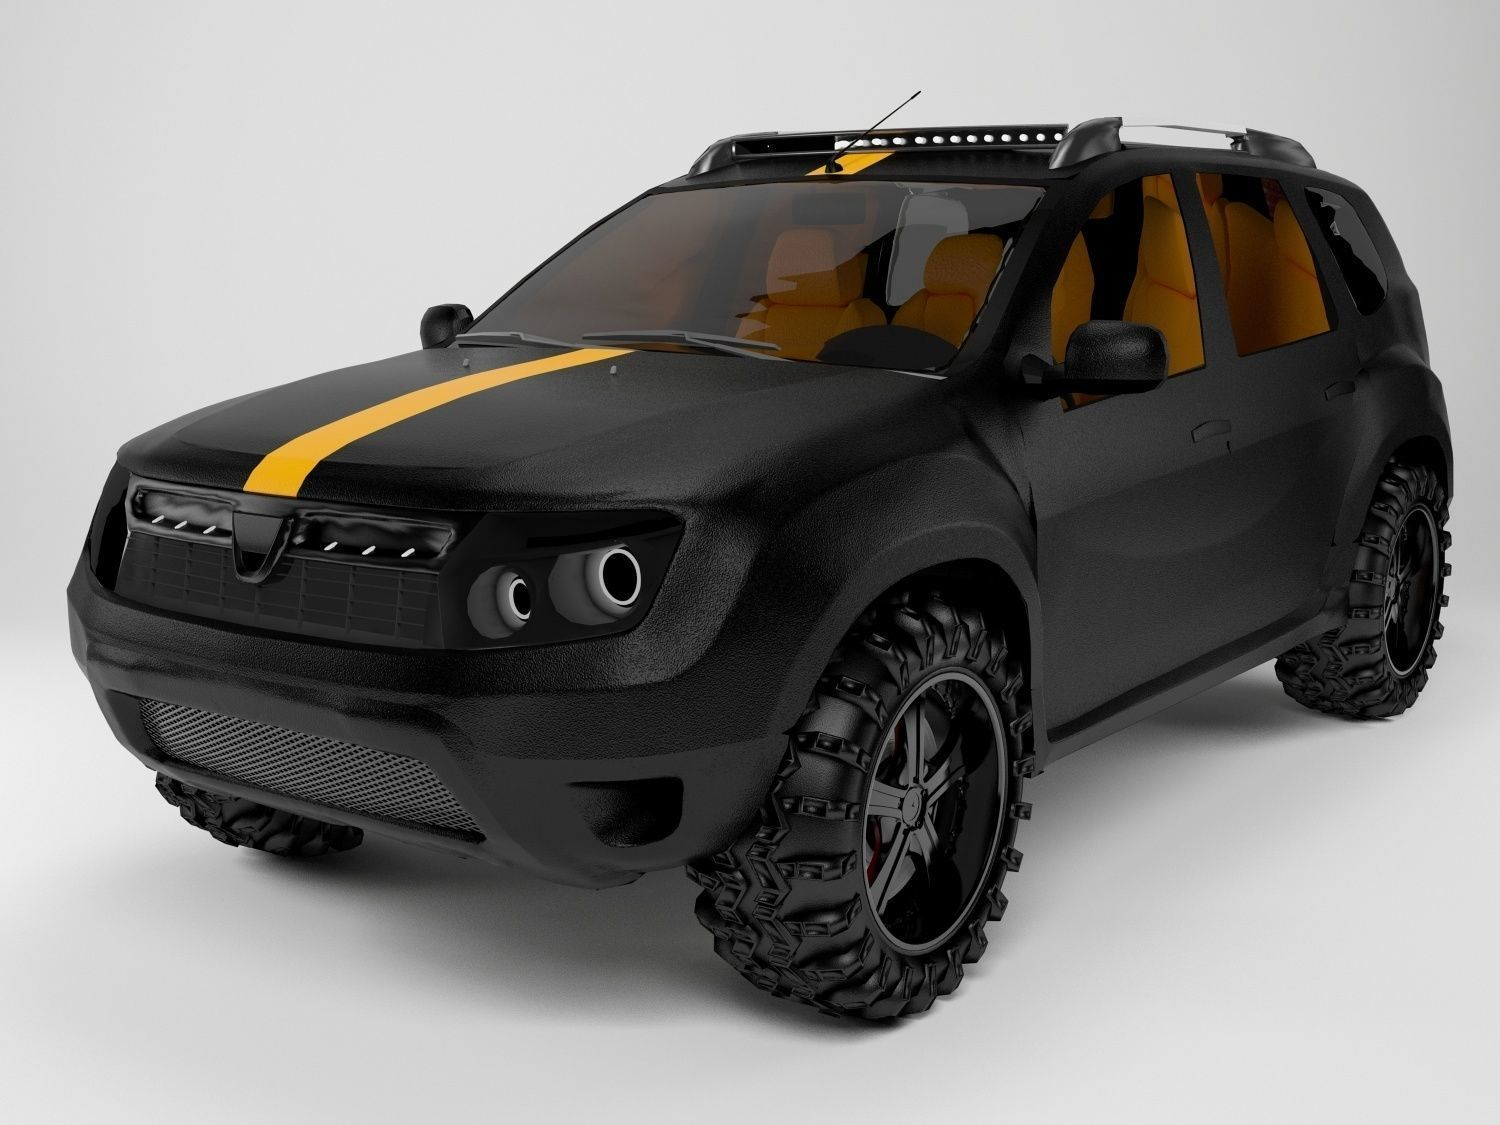 office chair 3d model howard elliott puff covers dacia duster | downloadfree3d.com